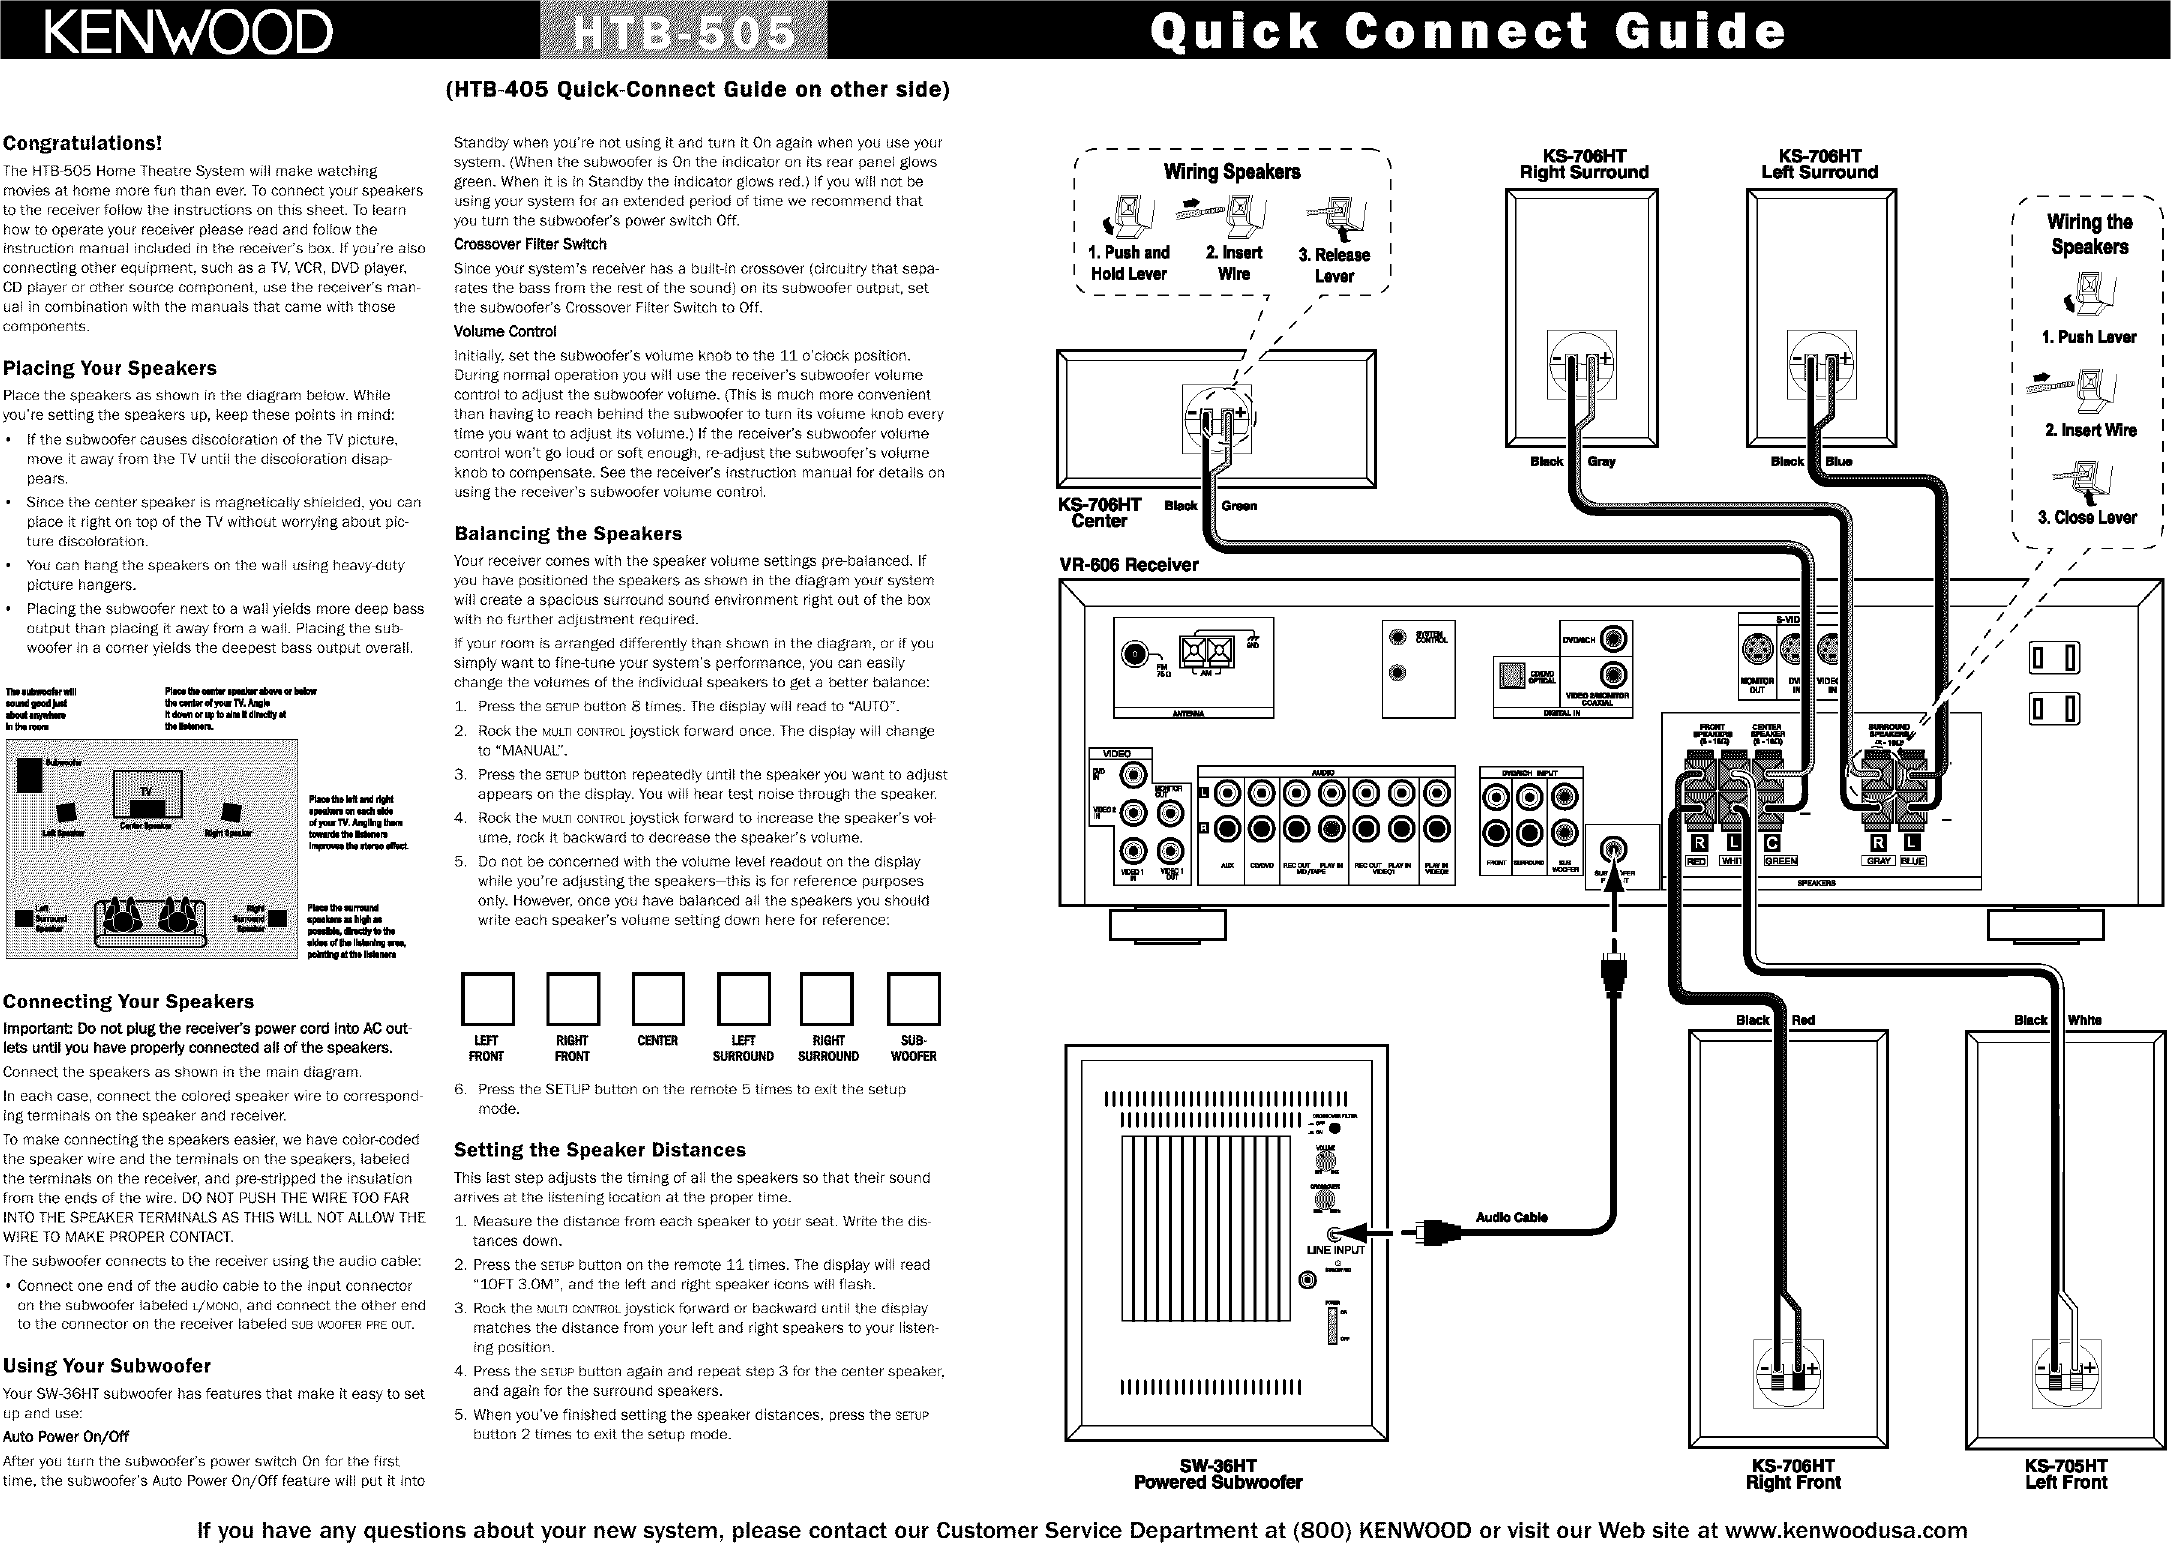 Microphones For The Theatre Manual Guide